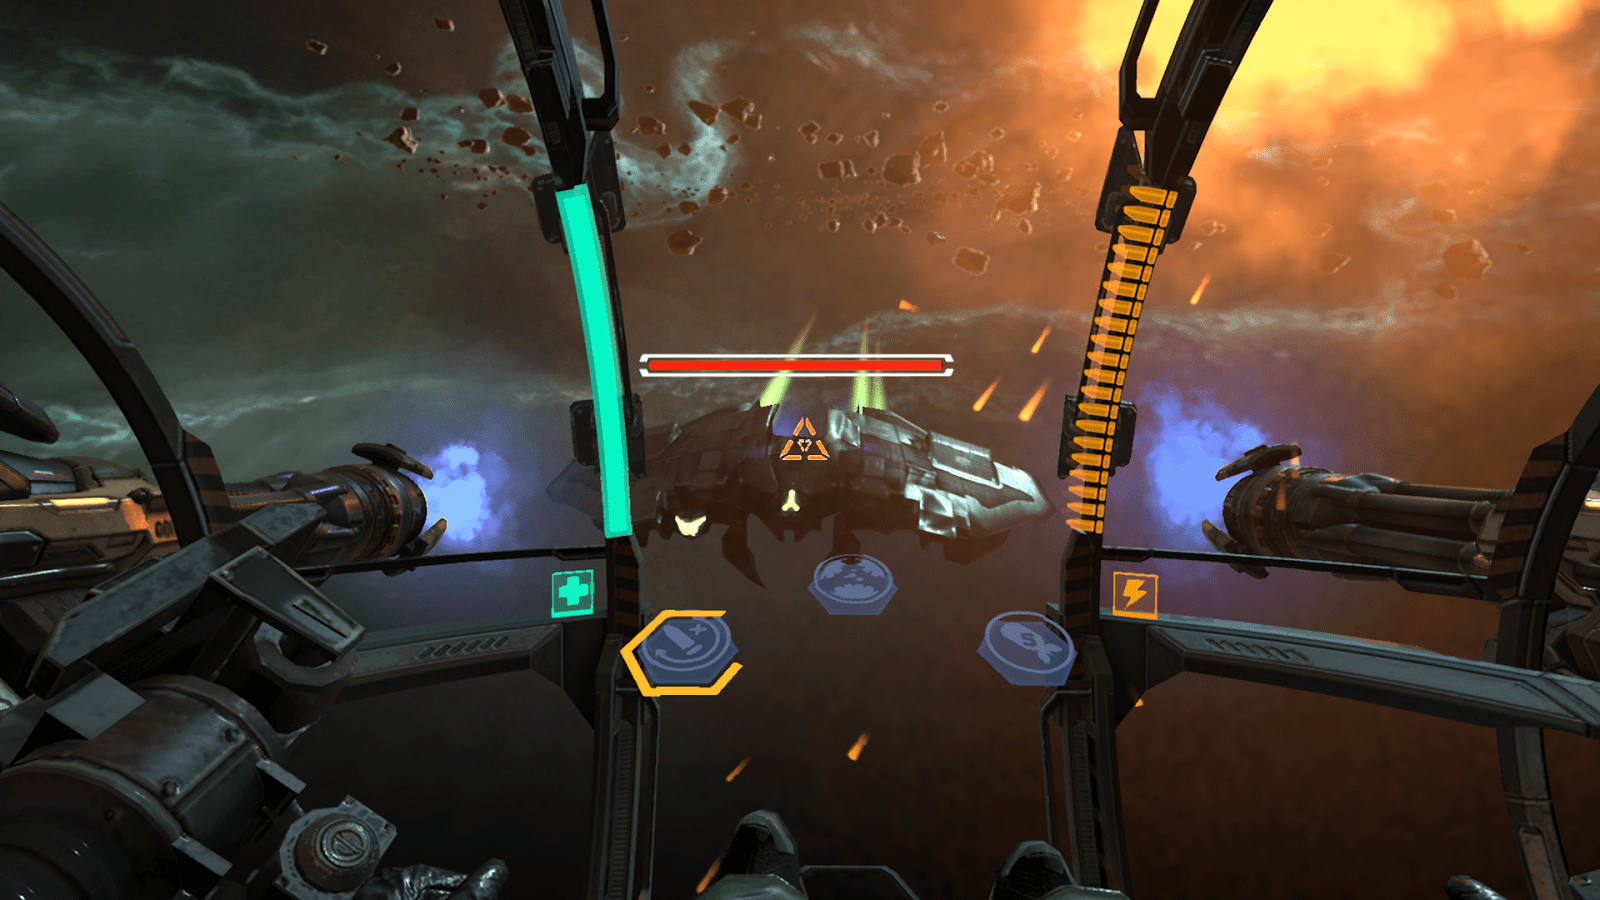 A large spaceship is being targeted while you sit inside a panel